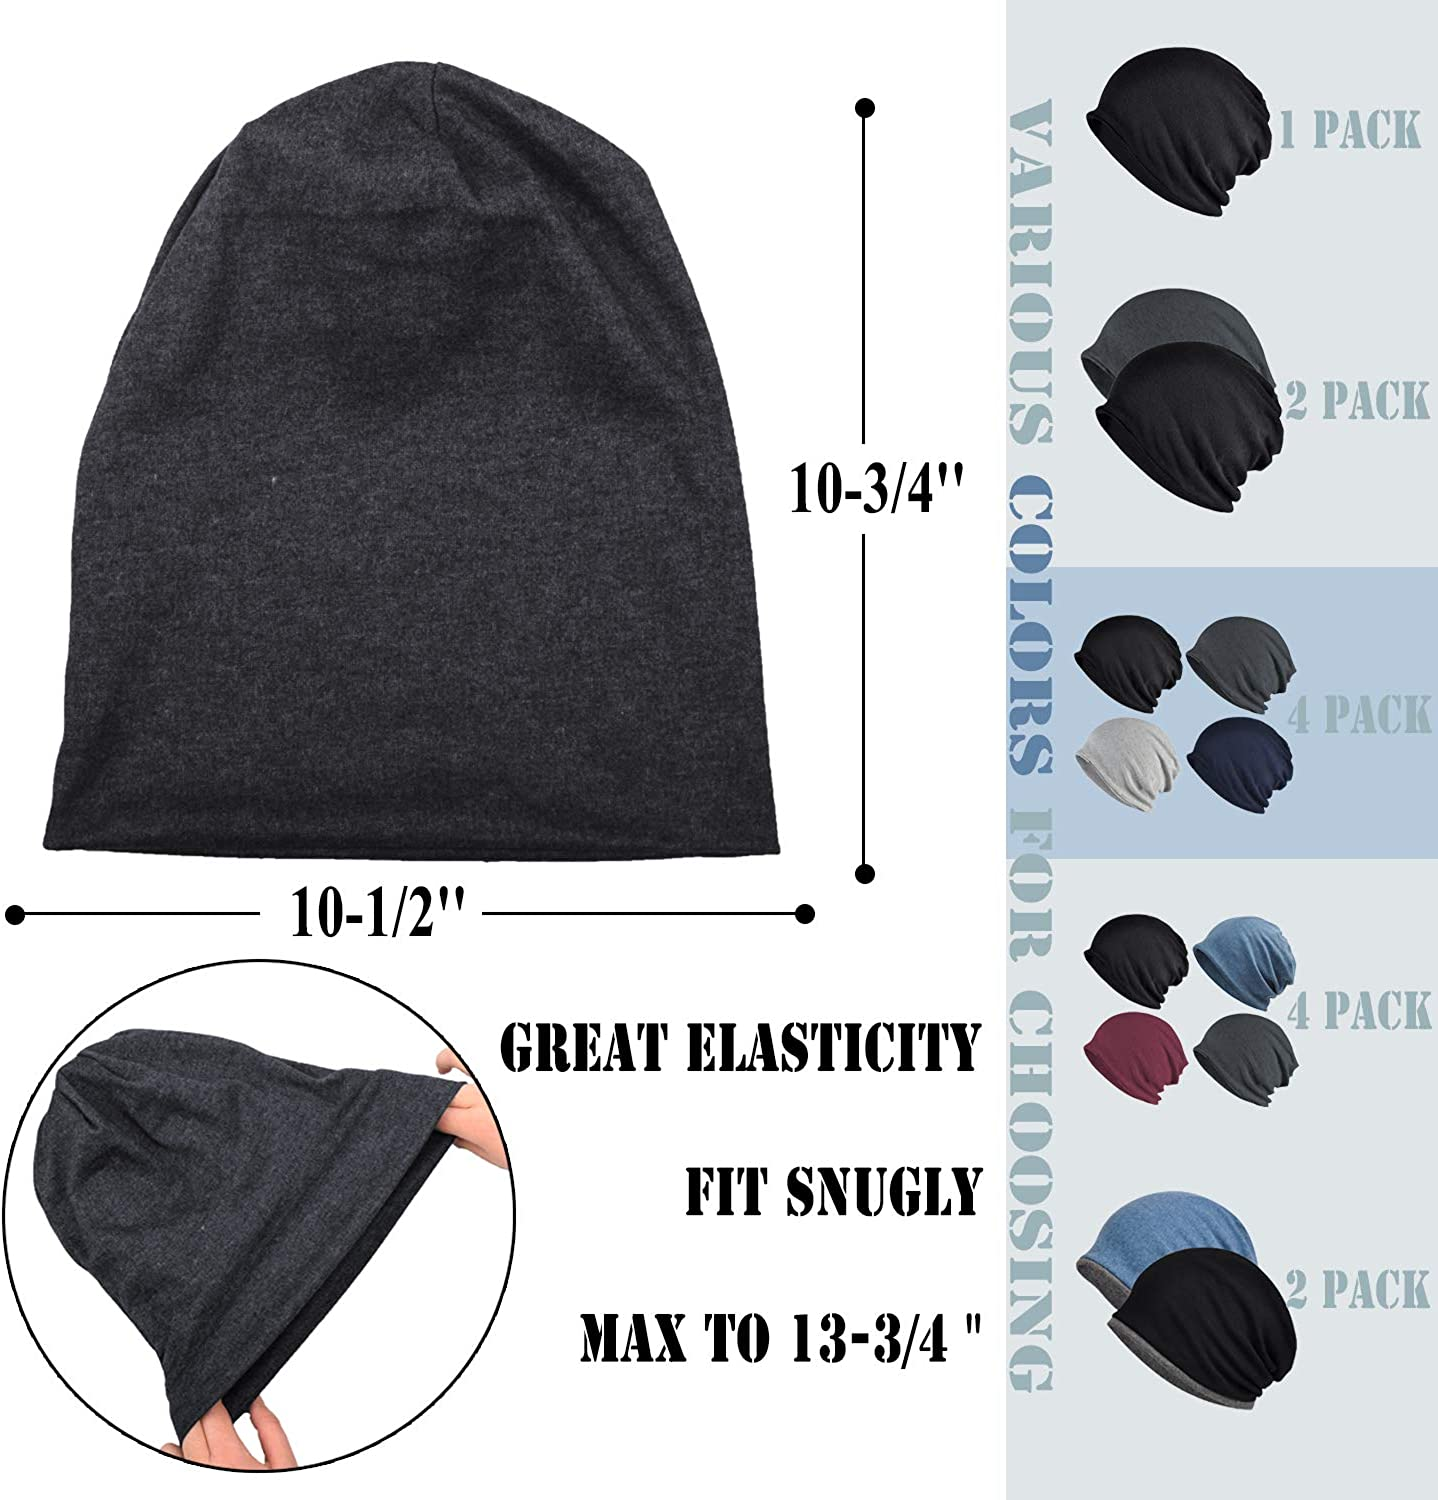 Cancer hat Chemo hat no outer seams. Cotton Beanie slouchy hat Two-layer hat made of light cotton jersey